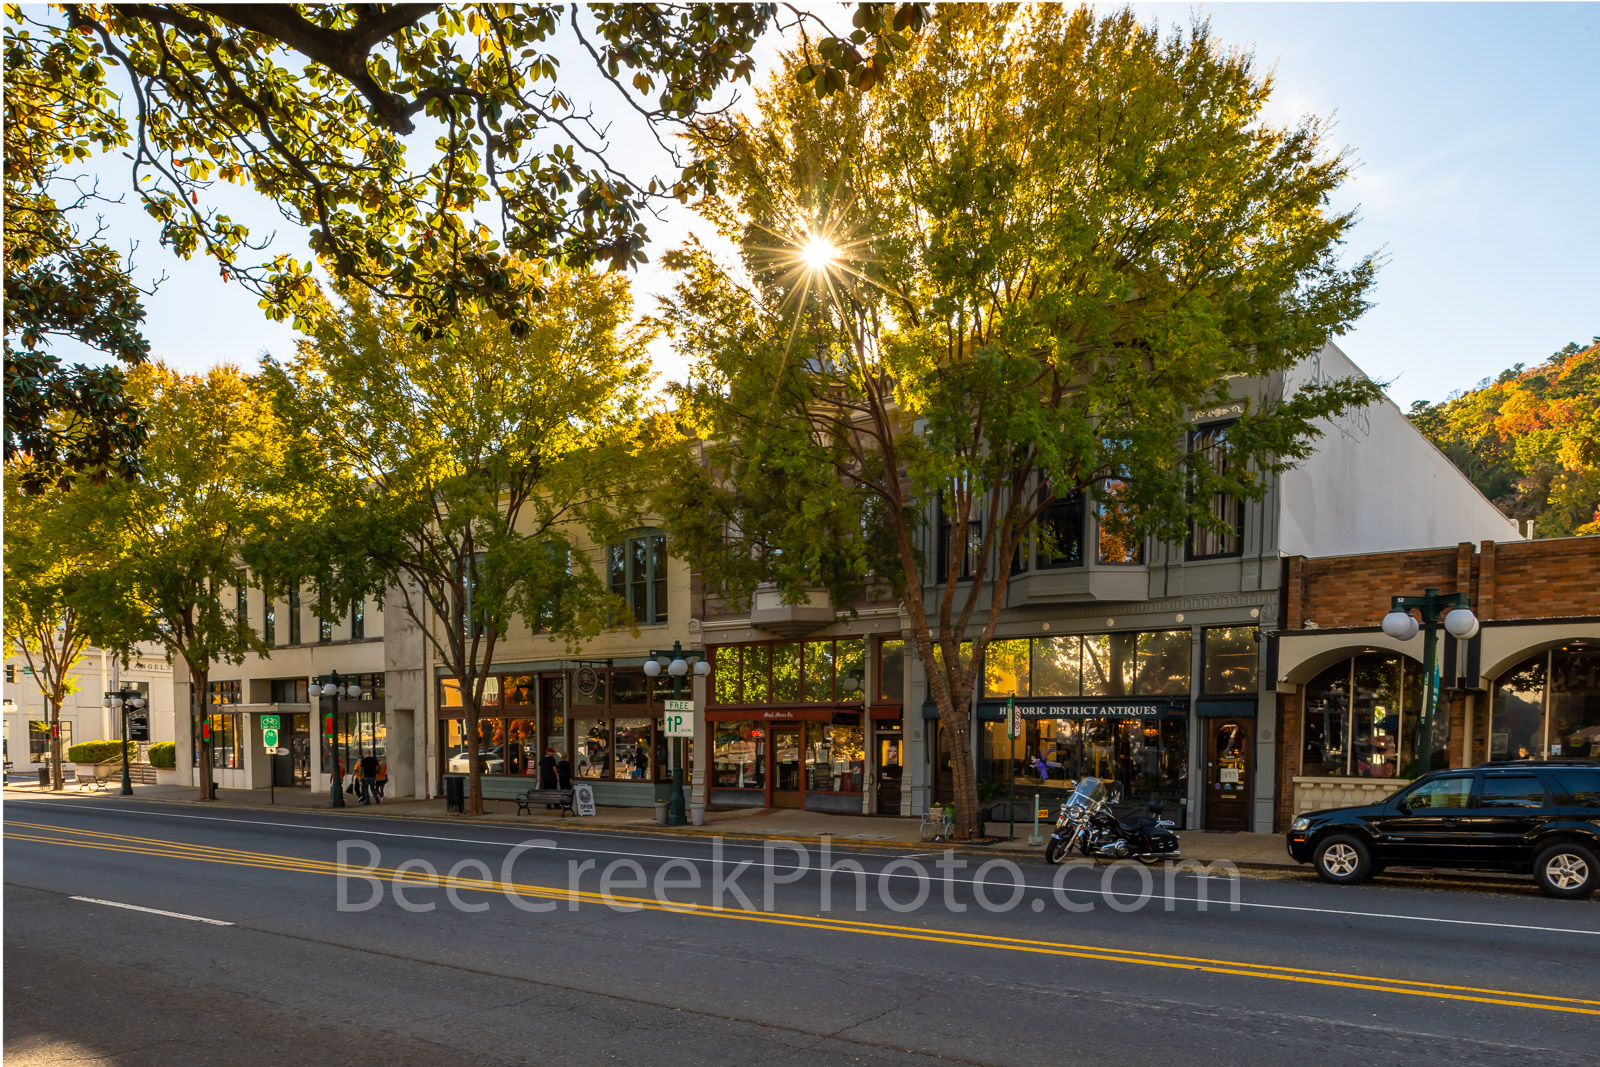 Hot Springs Central Avenue - Hot Springs is a city in the Ouachita Mountains of Arkansas. This capture is Hot Springs downtown...